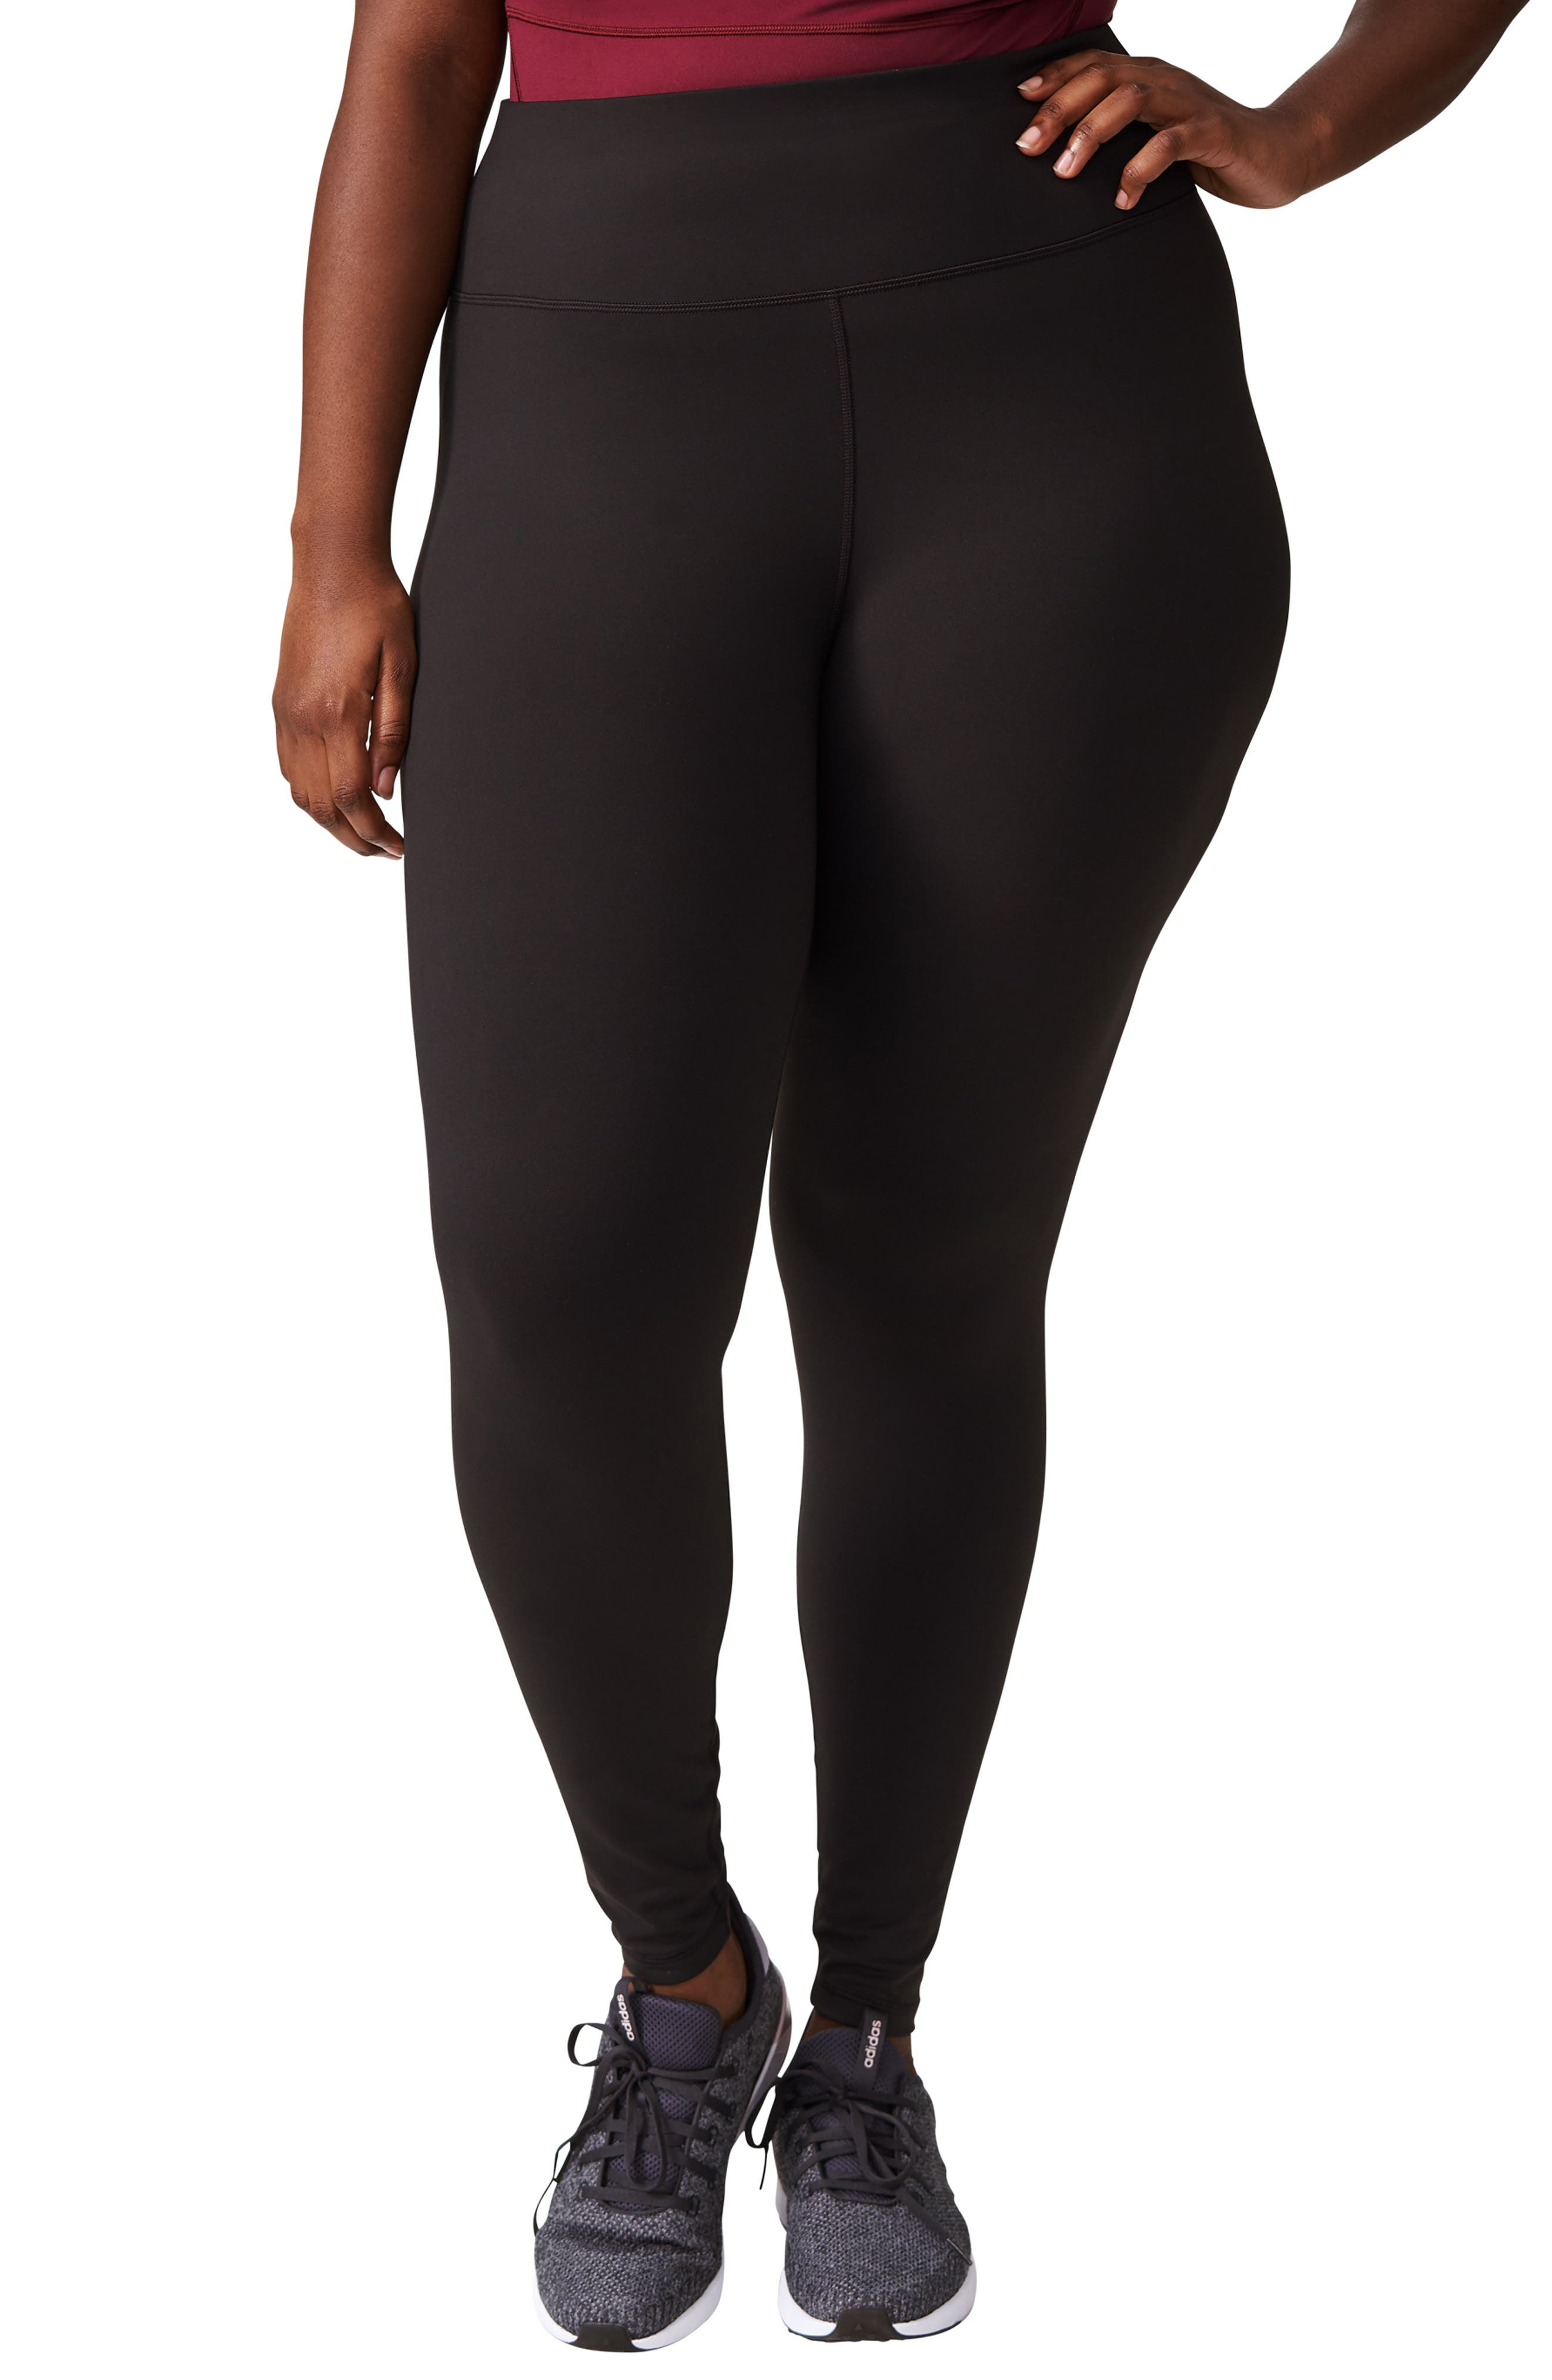 Plus Size Universal Standard Core Leggings, Size S (1-16W) - Black